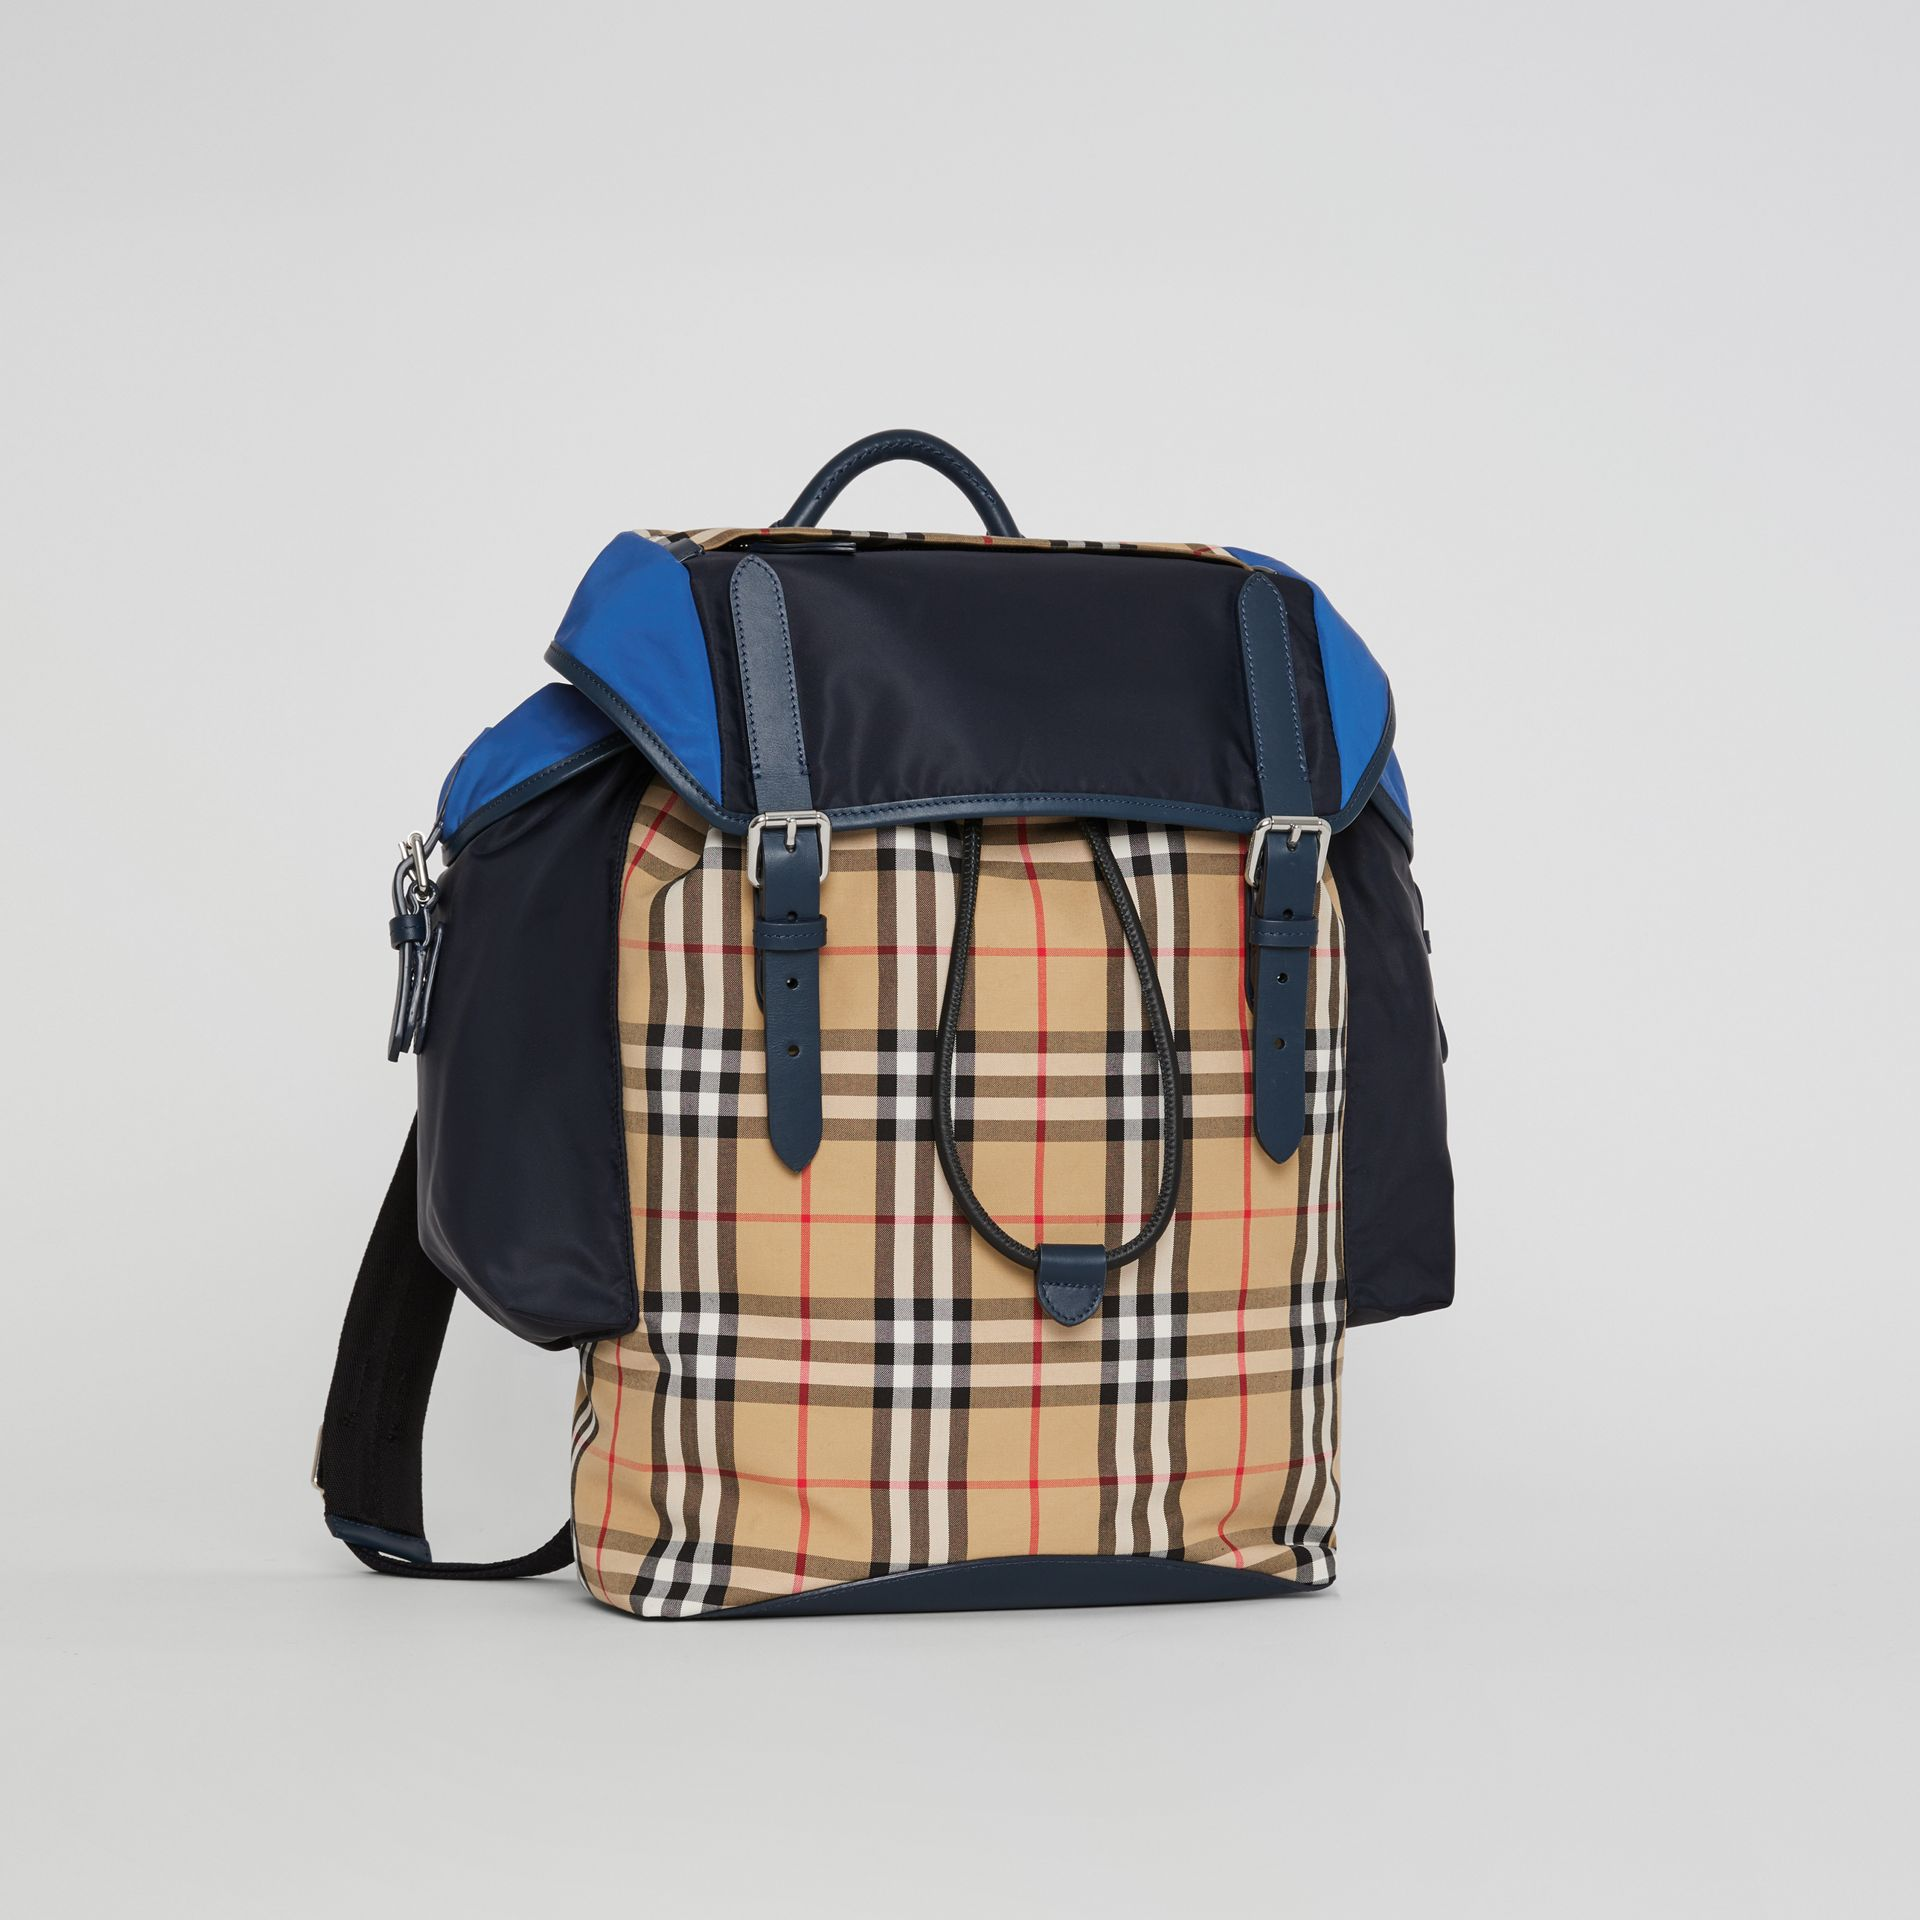 Lederrucksack im Vintage Check- und Colour-Blocking-Design (Marineblau) - Herren | Burberry - Galerie-Bild 6